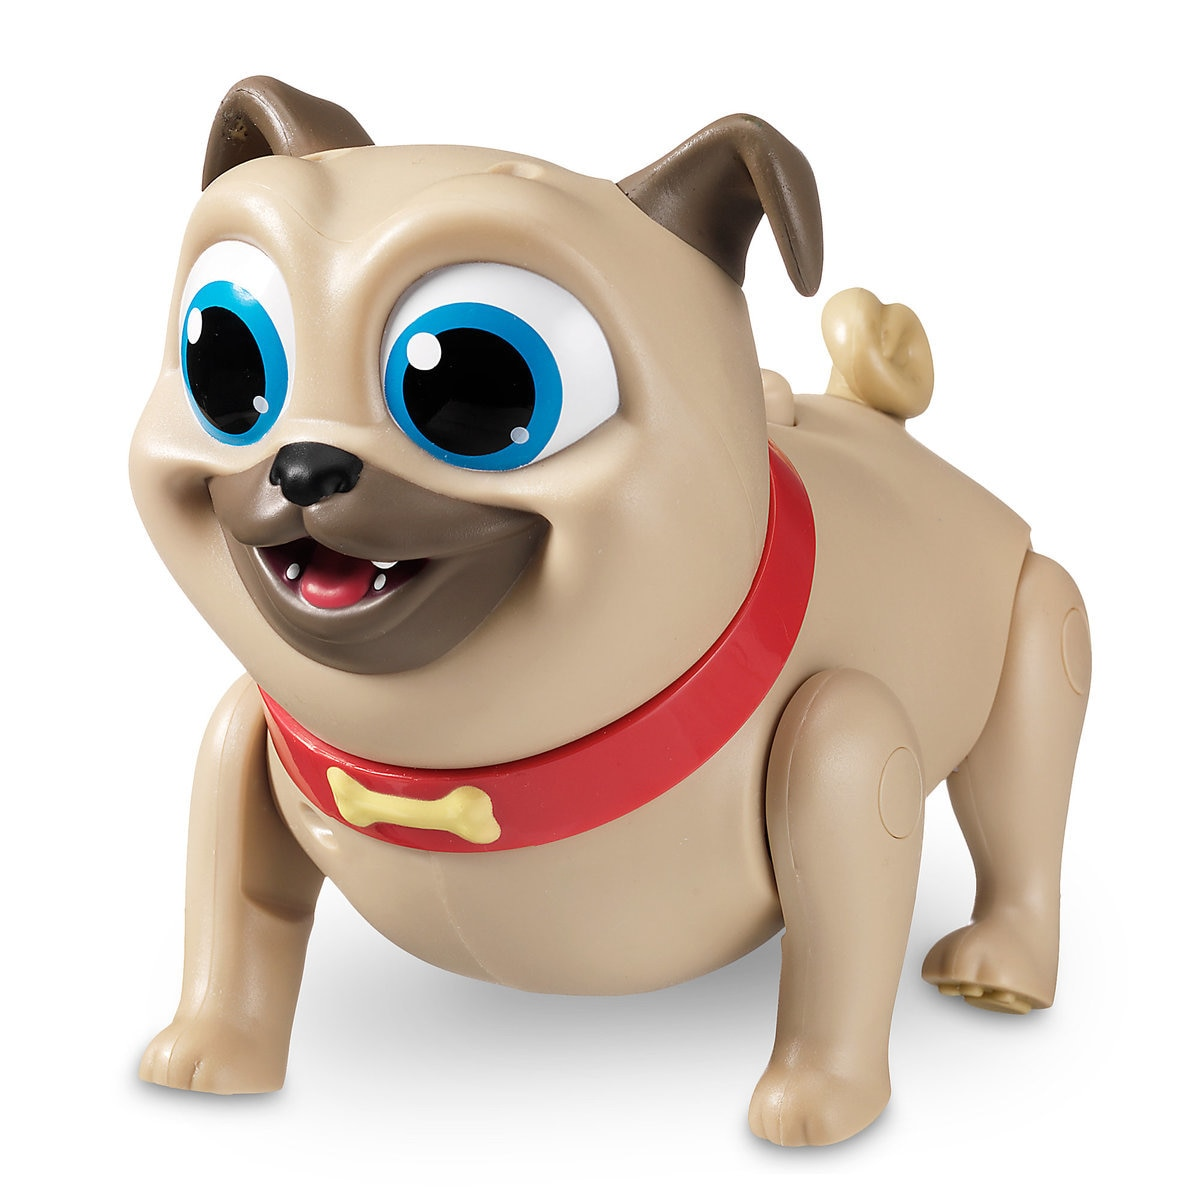 c4910db194e Product Image of Rolly Surprise Action Toy - Puppy Dog Pals   1